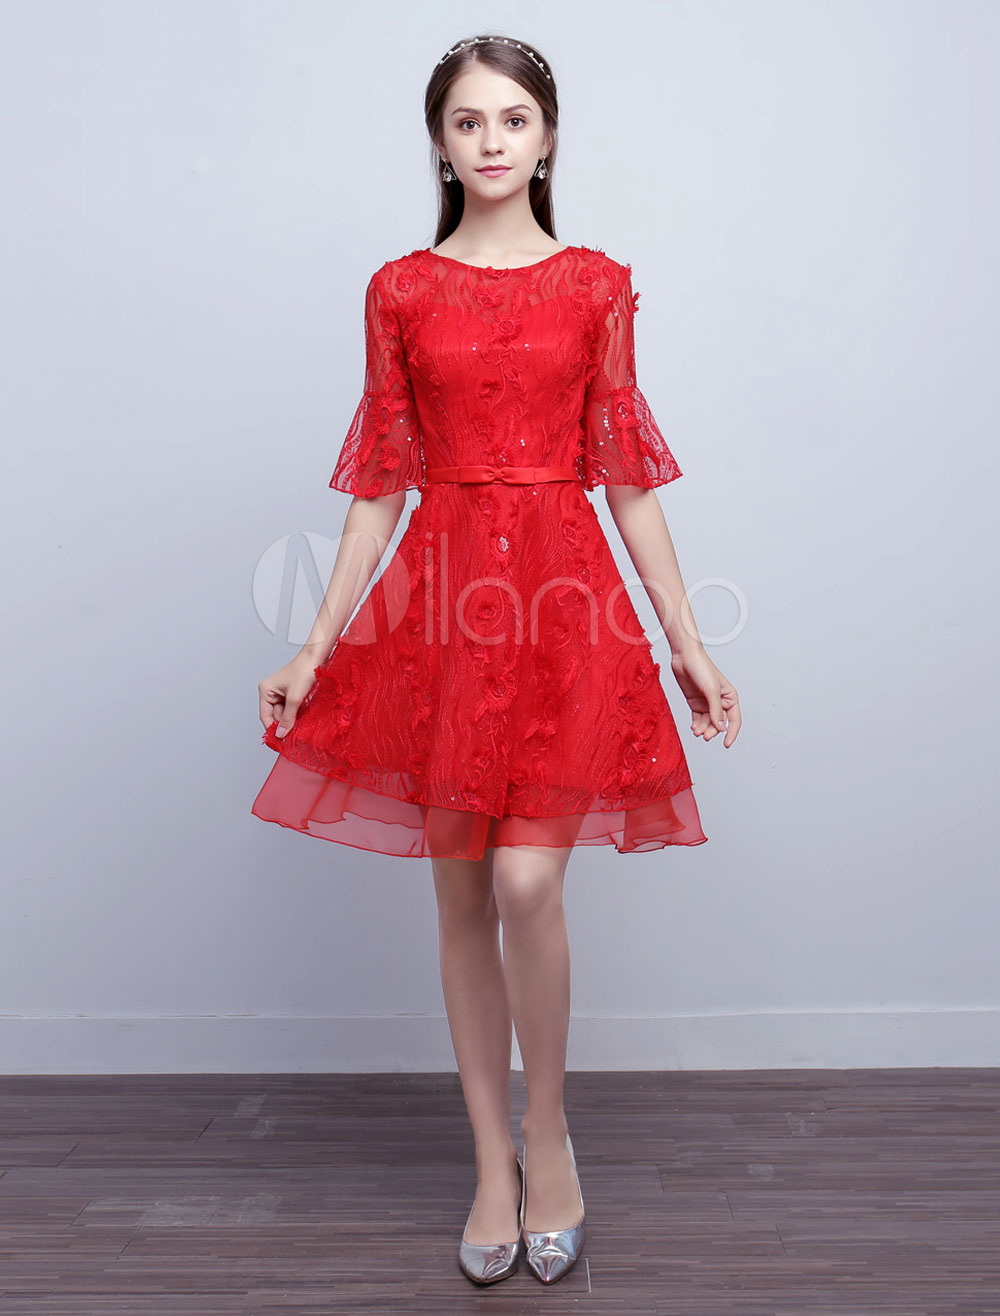 Red Homecoming Dress Lace Bell Sleeve Sash A Line Short Cocktail Dress (Wedding Cheap Party Dress) photo